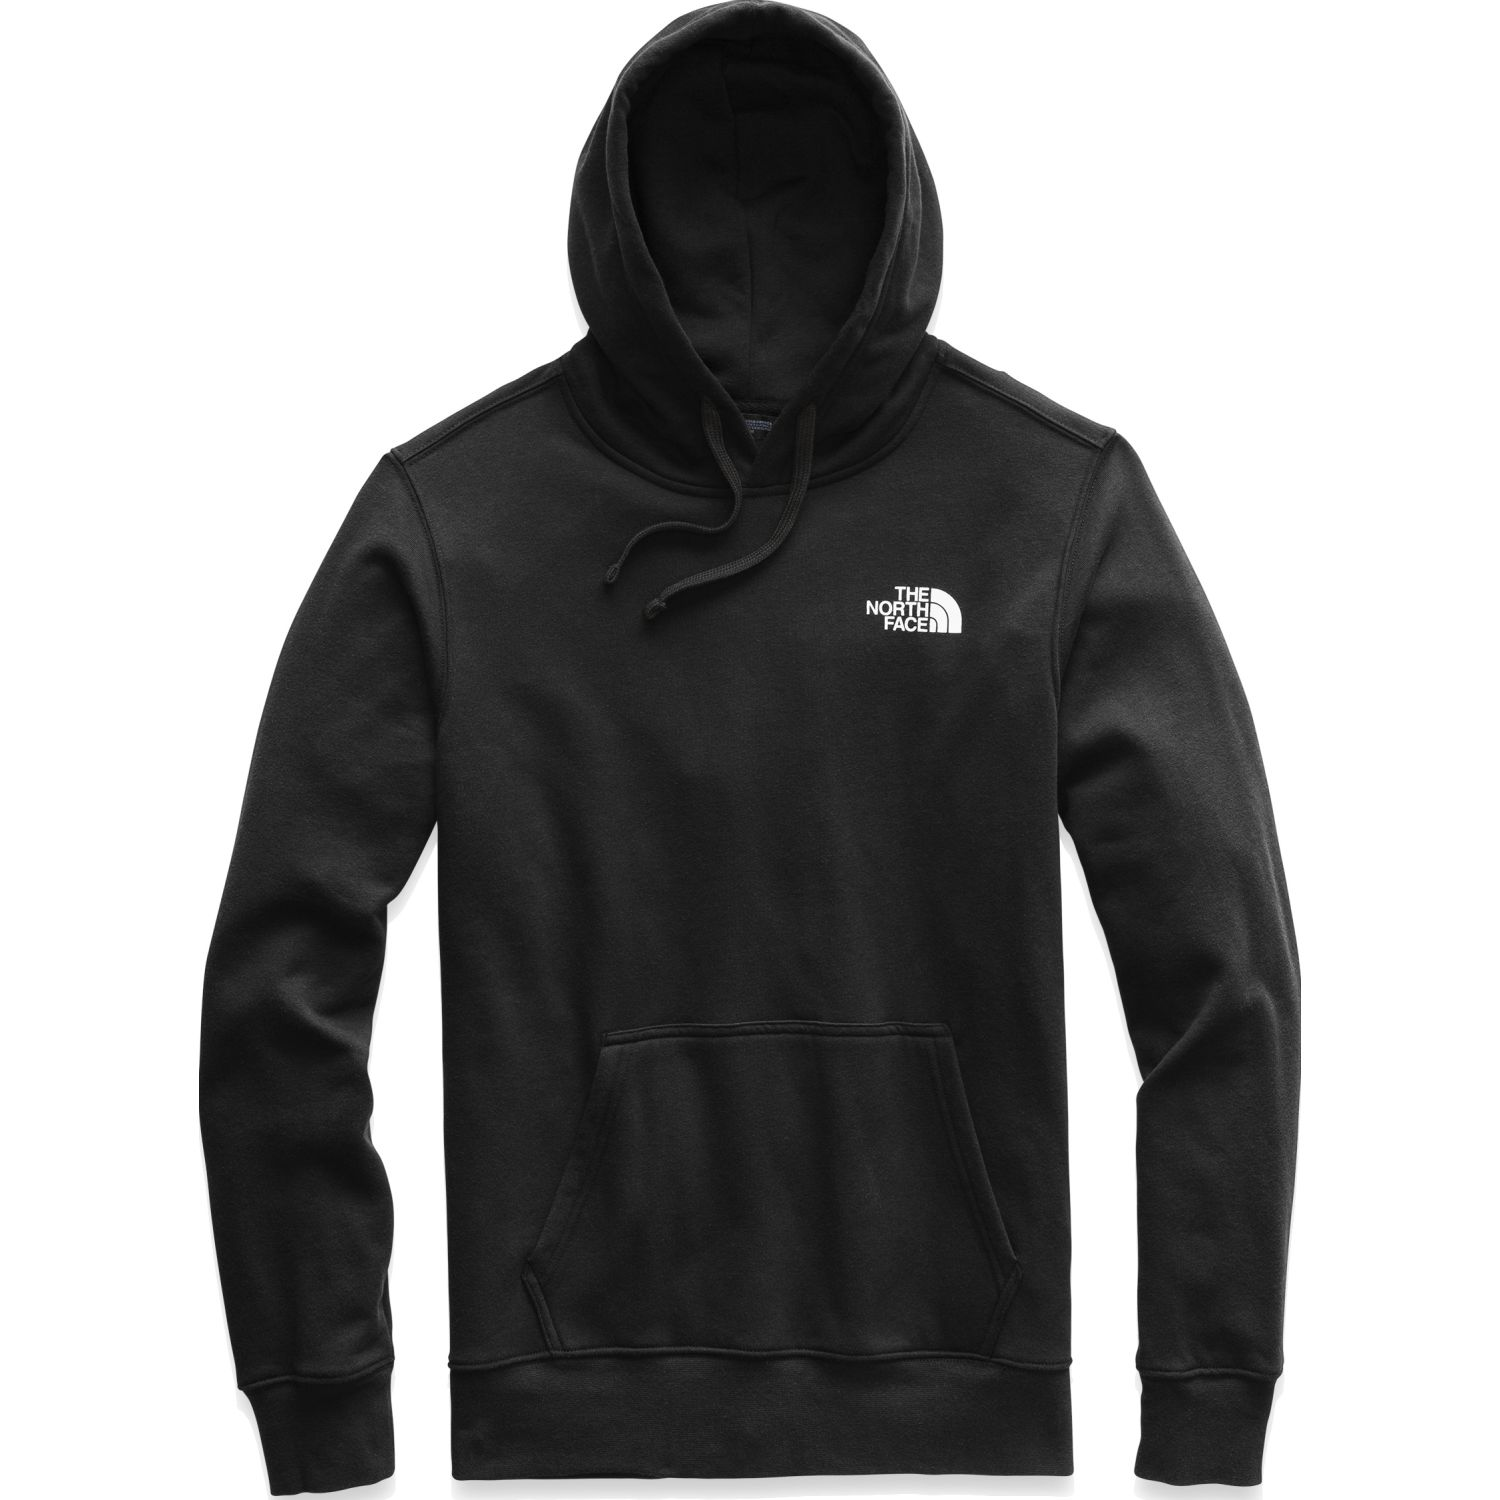 The North Face m red box pullover hoodie Negro Hoodies Deportivos